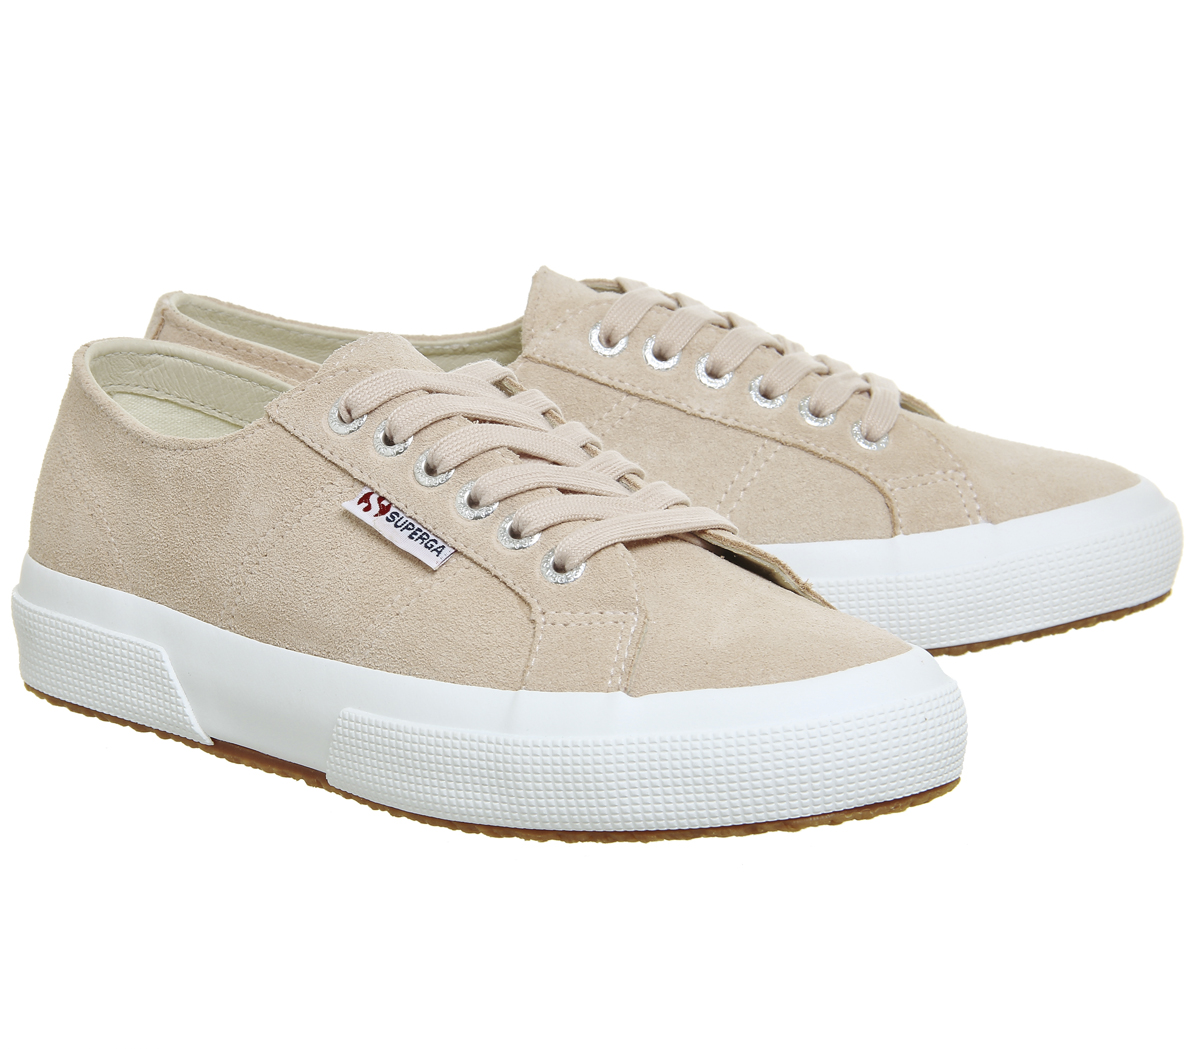 b86654a605e Womens Superga 2750 Trainers Pink Skin Suede Trainers Shoes